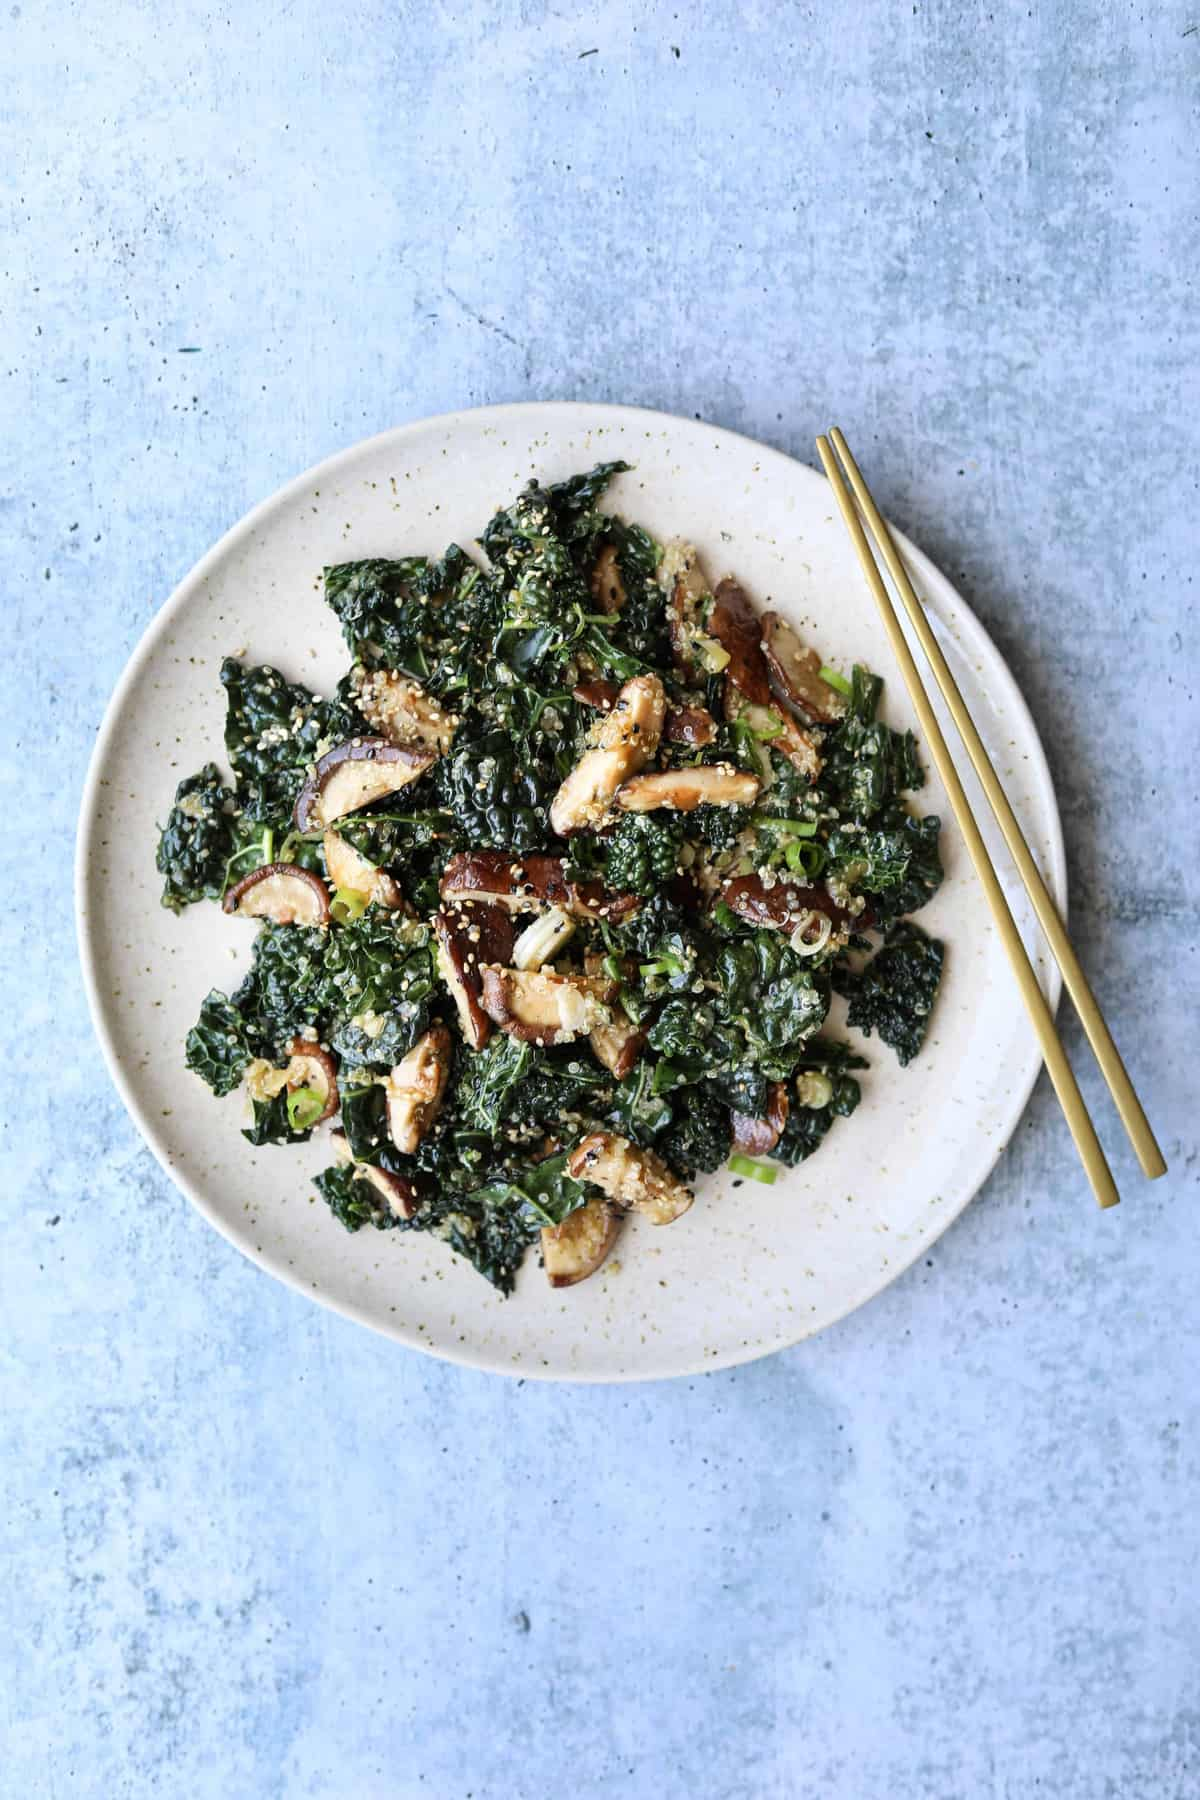 Kale and Quinoa Salad with Shiitake Mushrooms on a plate with gold chopsticks